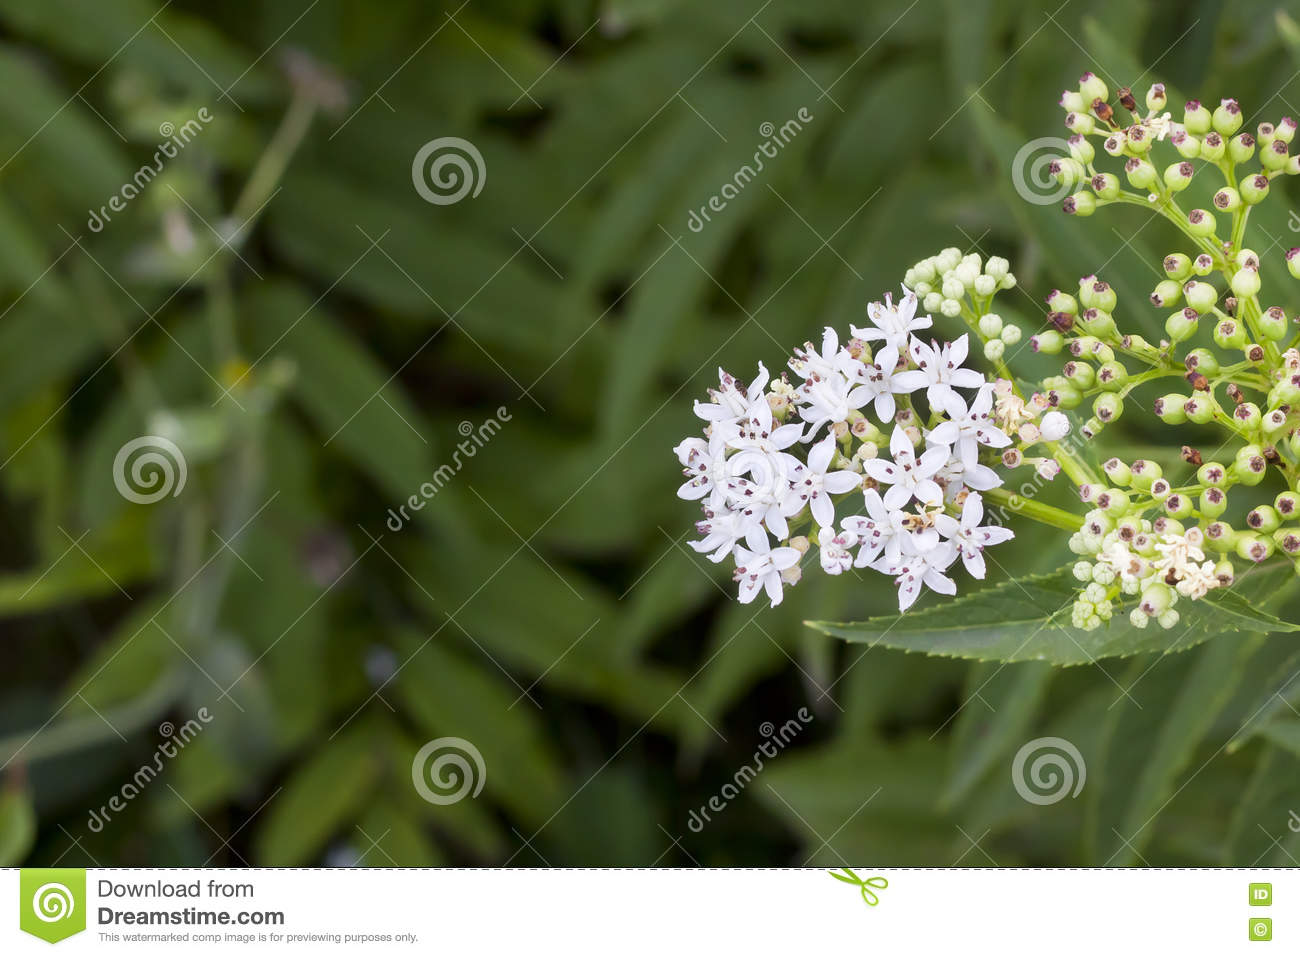 Star shape white flowers stock photo image of bush spring 77906144 download comp mightylinksfo